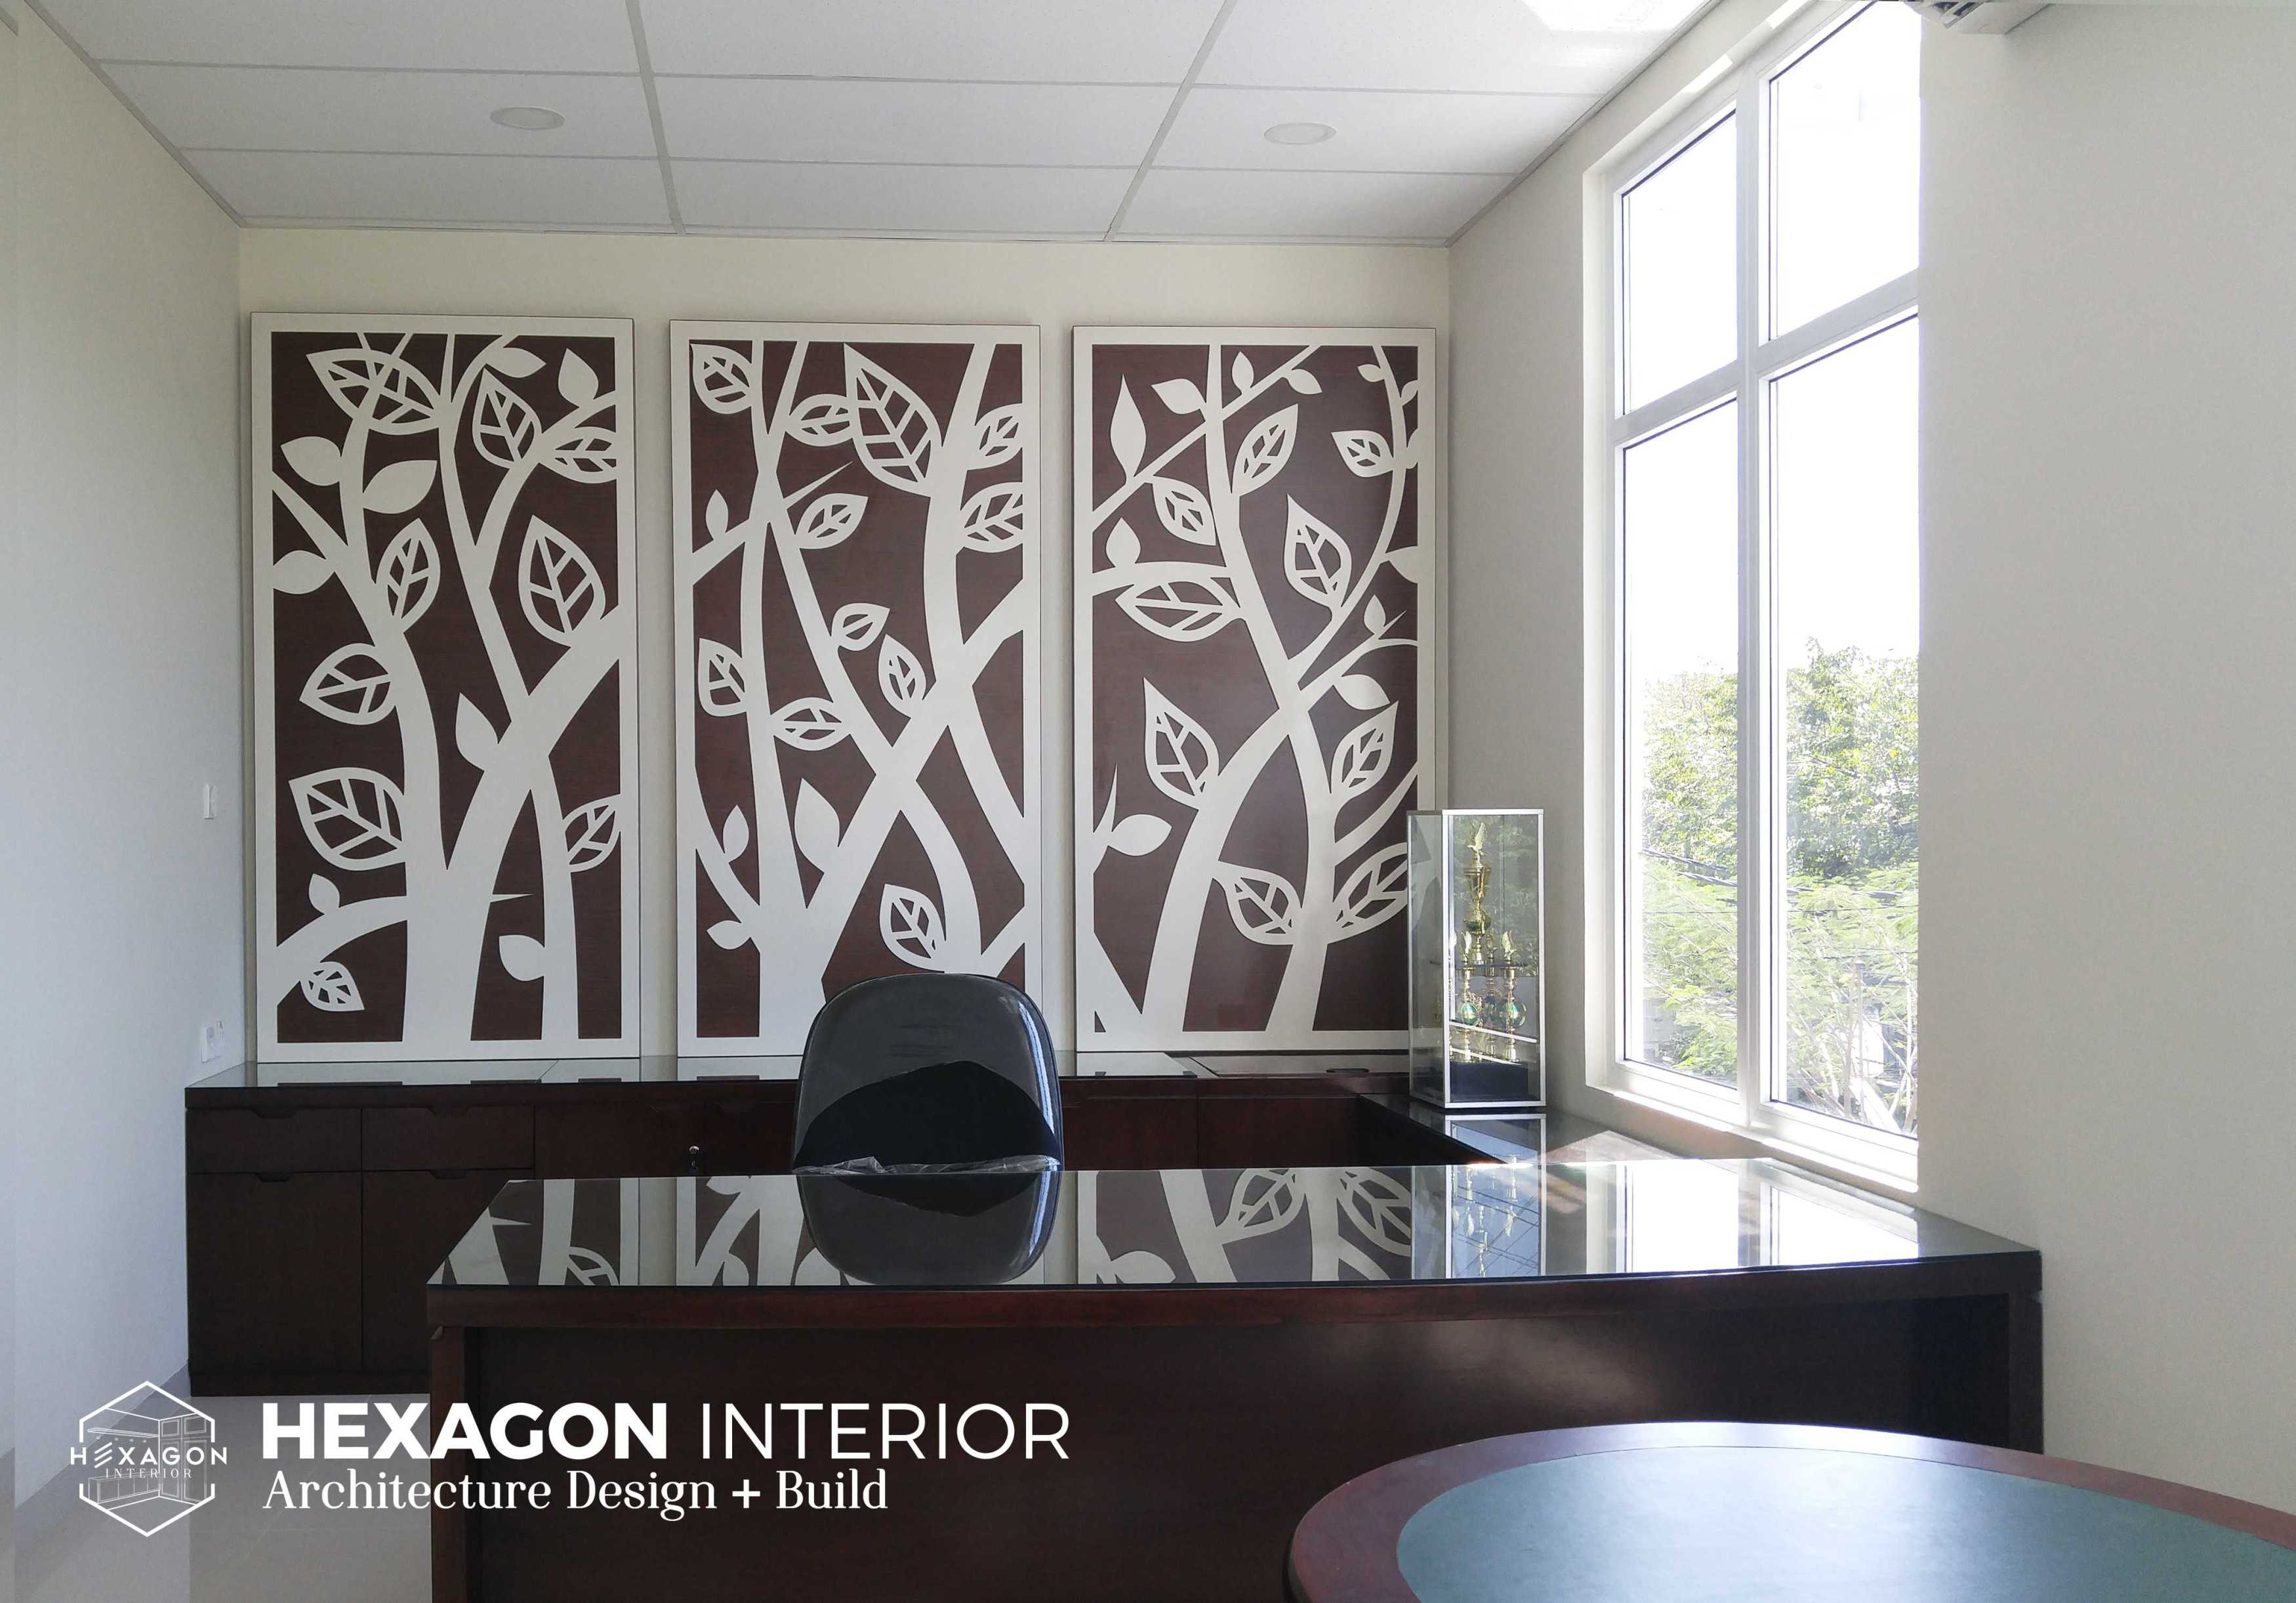 Hexagon Interior Showroom - Office Project At Surabaya   Hexagon-Interior-Showroom-Office-Project-At-Surabaya   51452